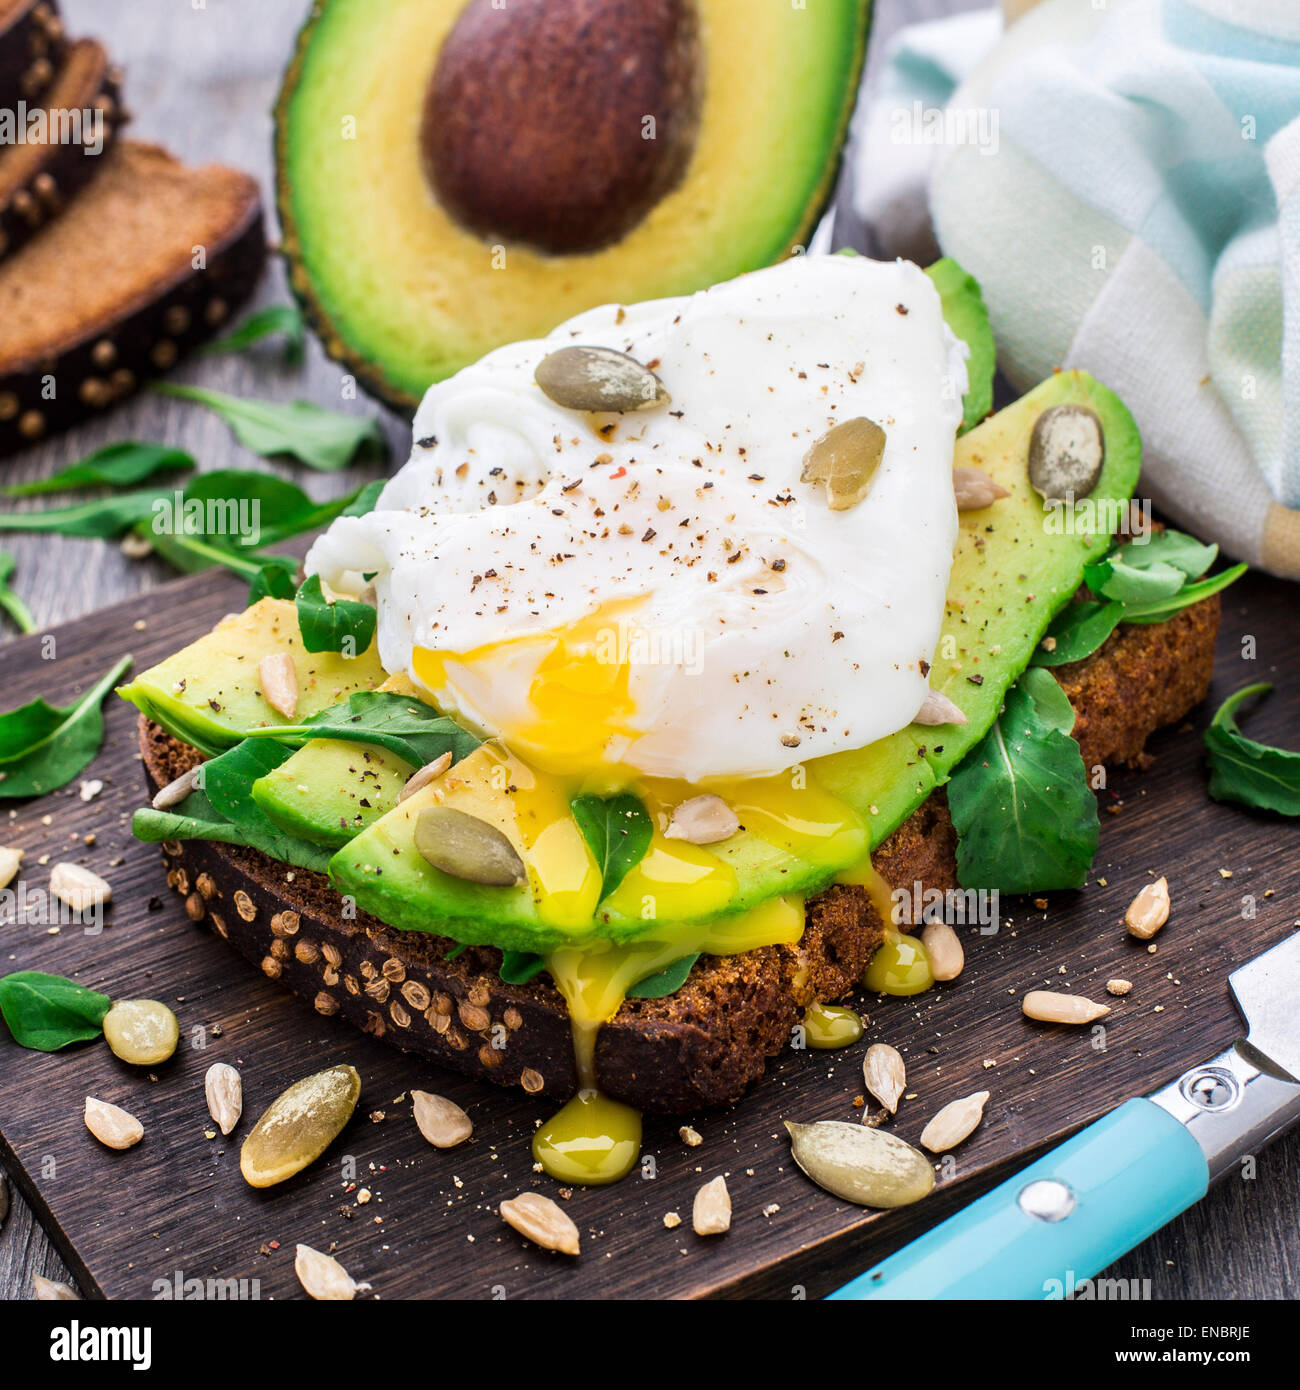 Avocado sandwich with arugula, seeds and poached egg - Stock Image